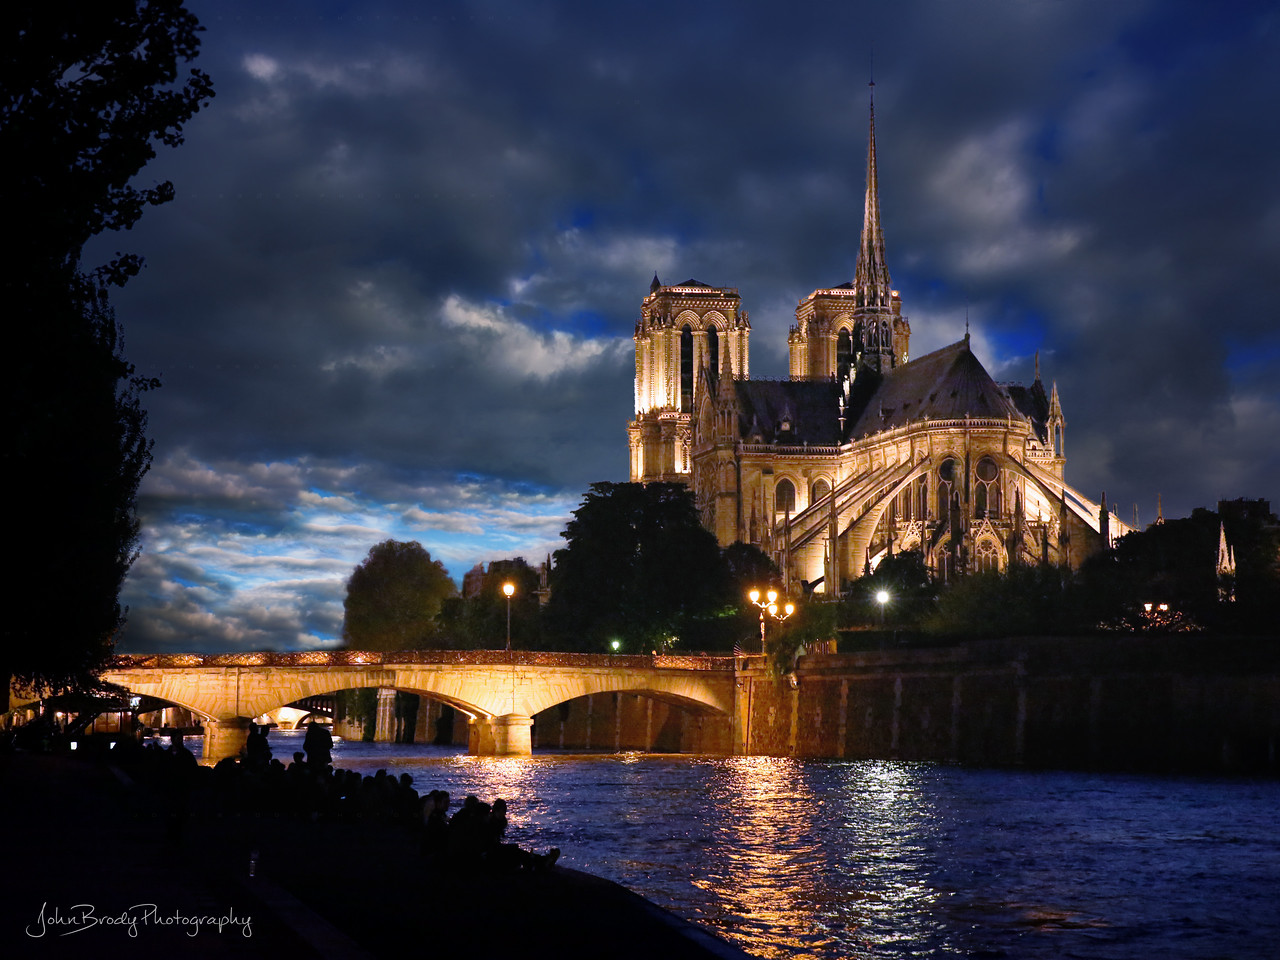 Notre Dame Cathedral at Sunset - Paris locals gather at dusk in circles of friends on the Seine riverbank across from the Cathedral. I post this as I follow the efforts of the French to rebuild this wonderful architectural masterpiece. - John Brody Photography / JohnBrodyPhotography.com / JohnBrody.com